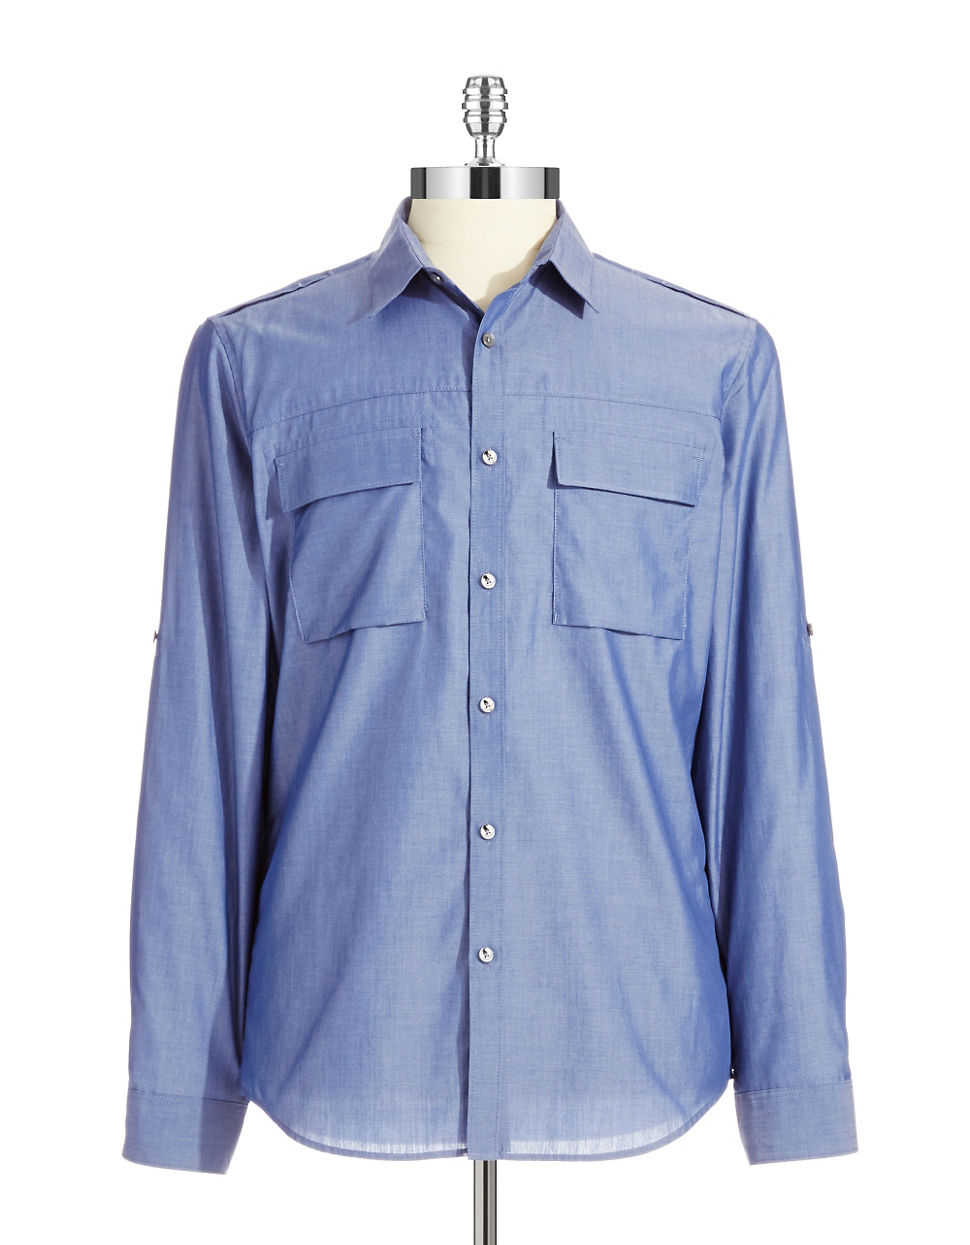 Calvin klein chambray sport shirt with roll tab sleeves in for Men s roll tab sleeve shirts